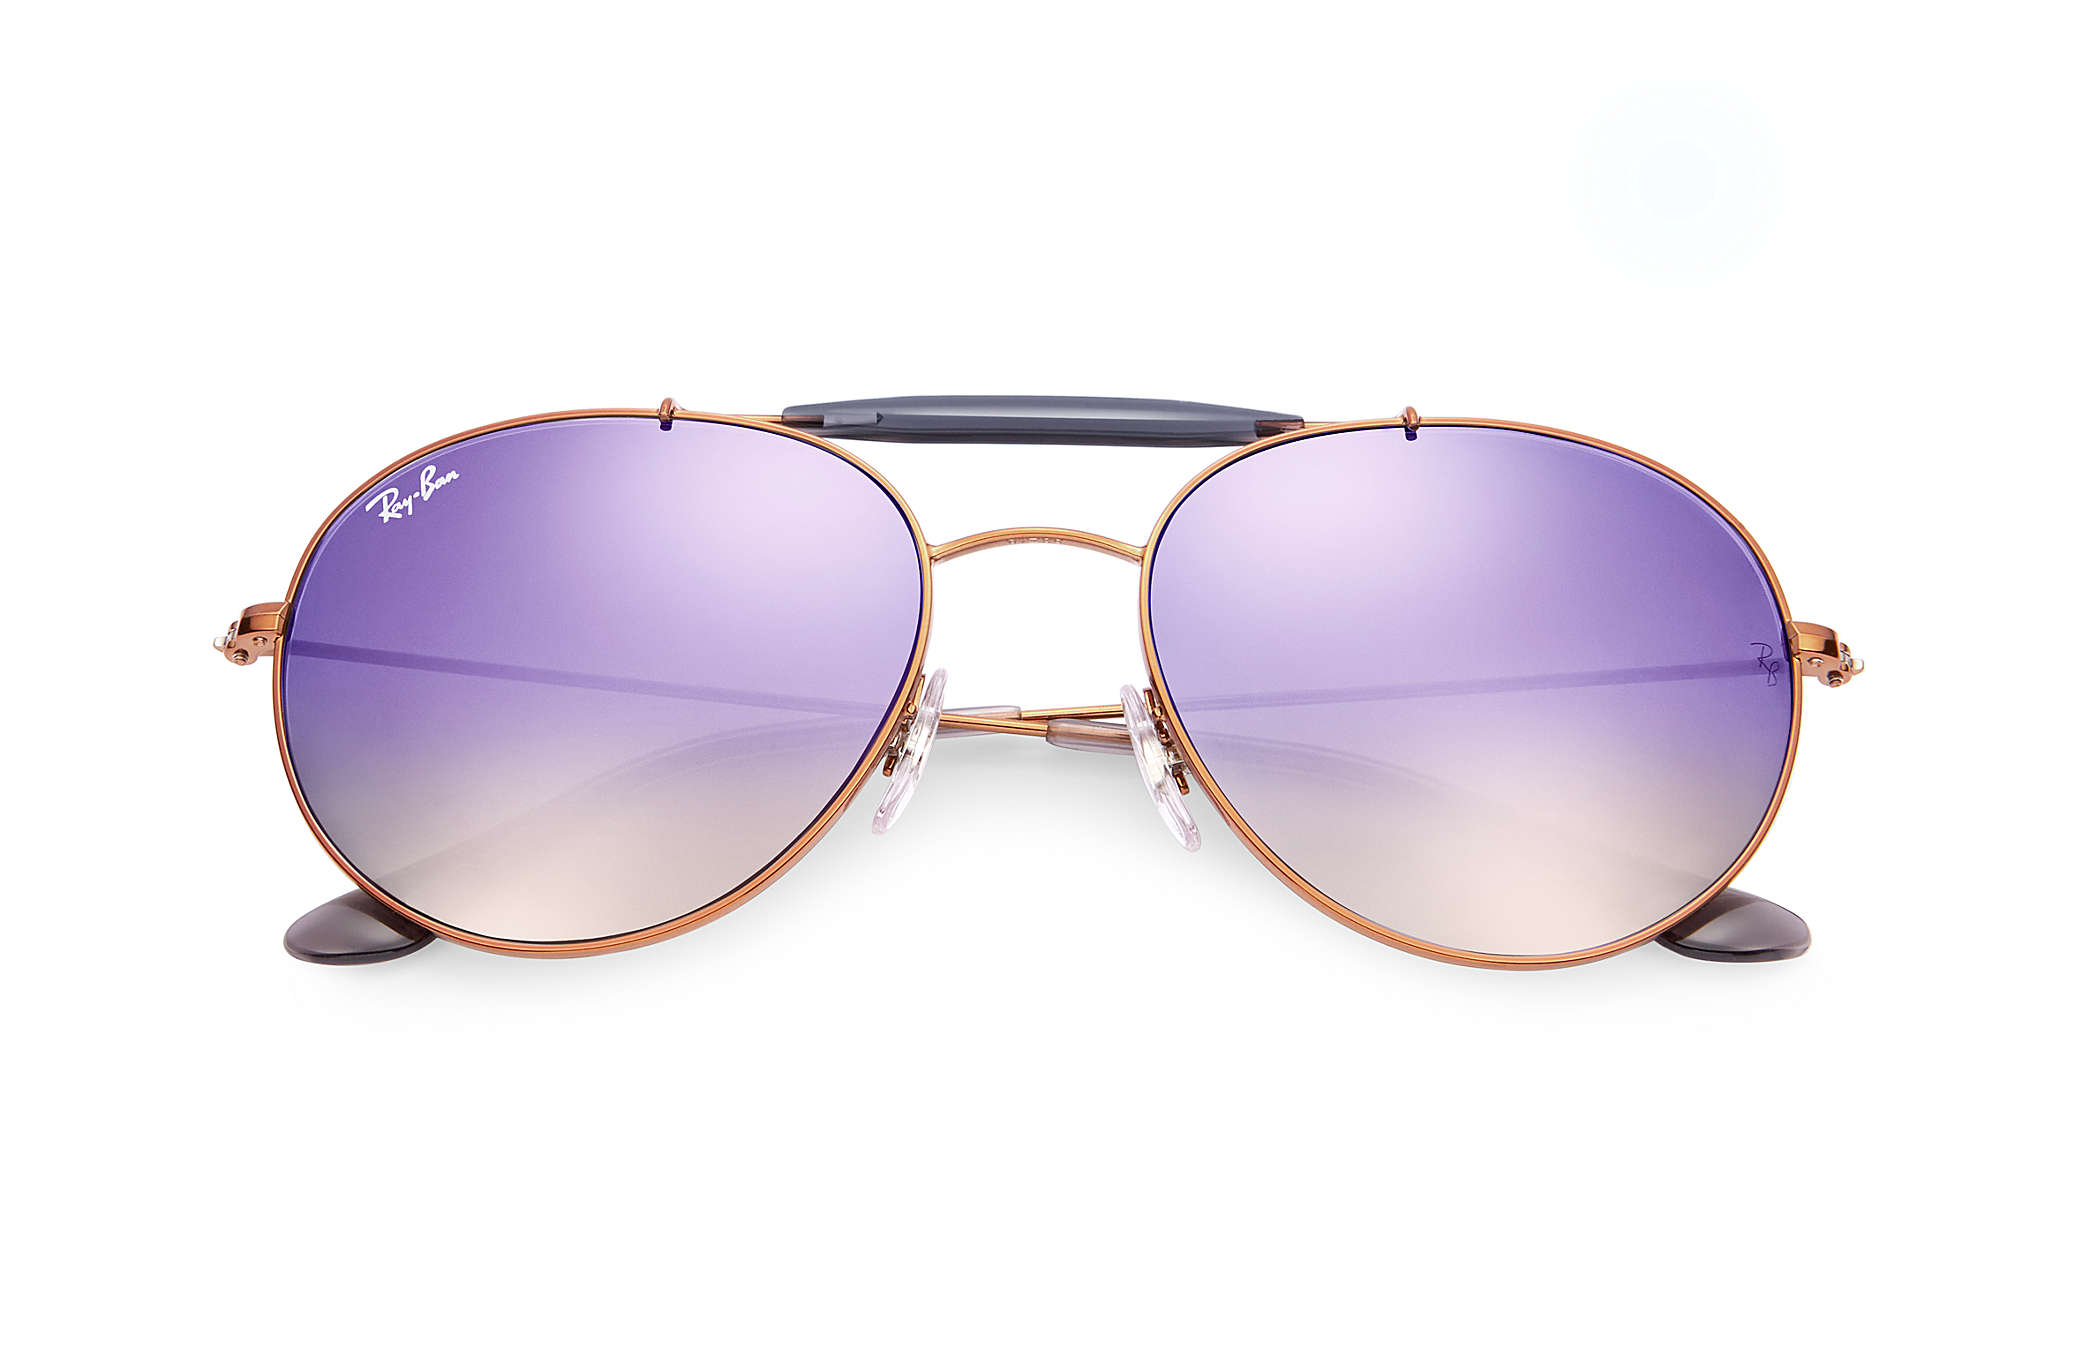 4635801f738c0 Ray-Ban RB3540 Bronze-Copper - Metal - Lilac Lenses - 0RB3540198 ...